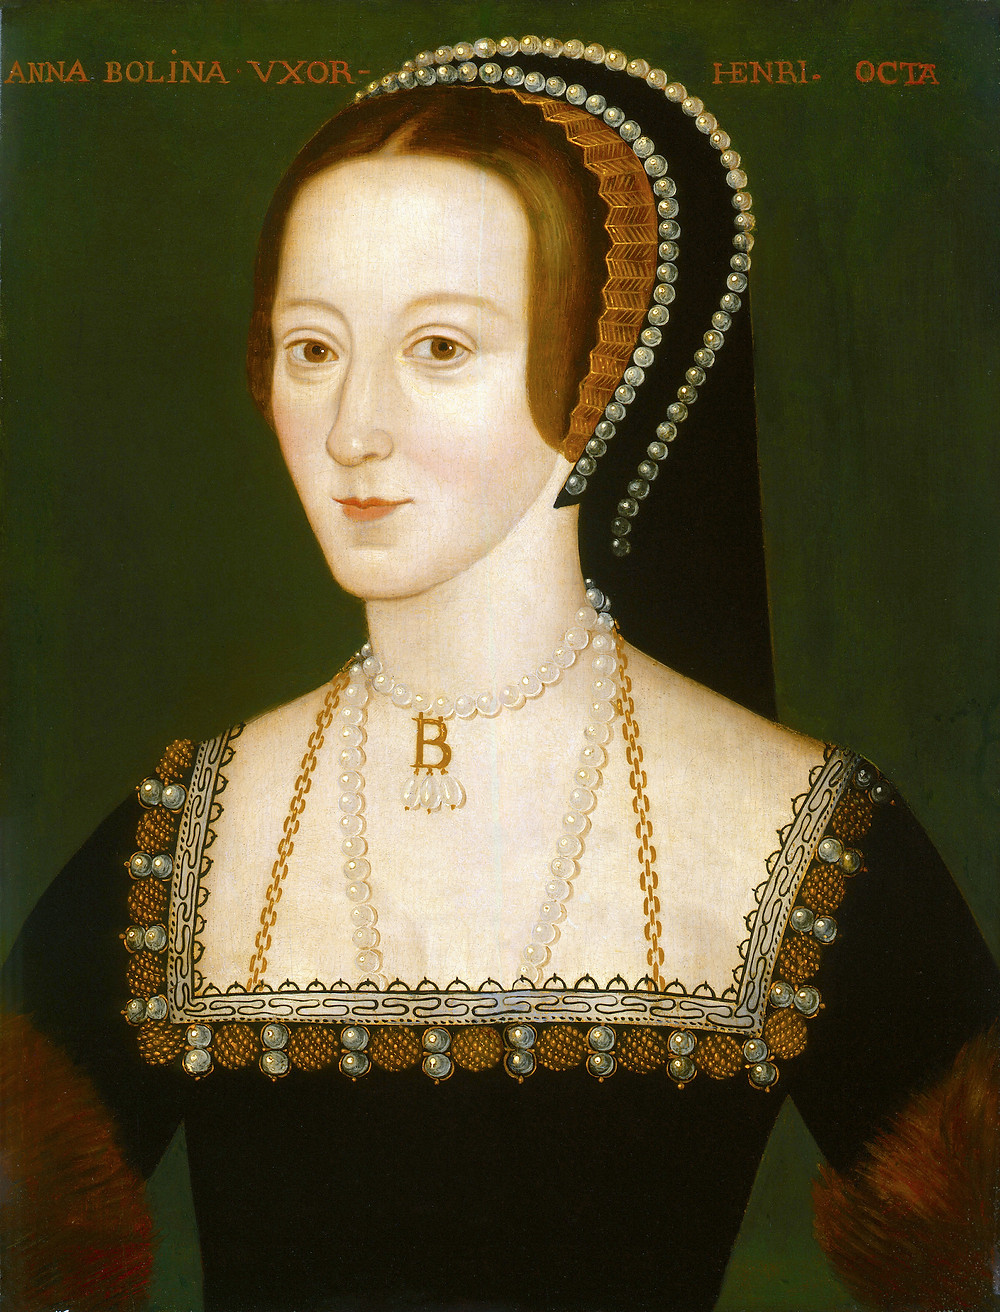 16th century portrait of Anne Boleyn by an unknown artist. Queen of England as the second wife of king Henry VIII